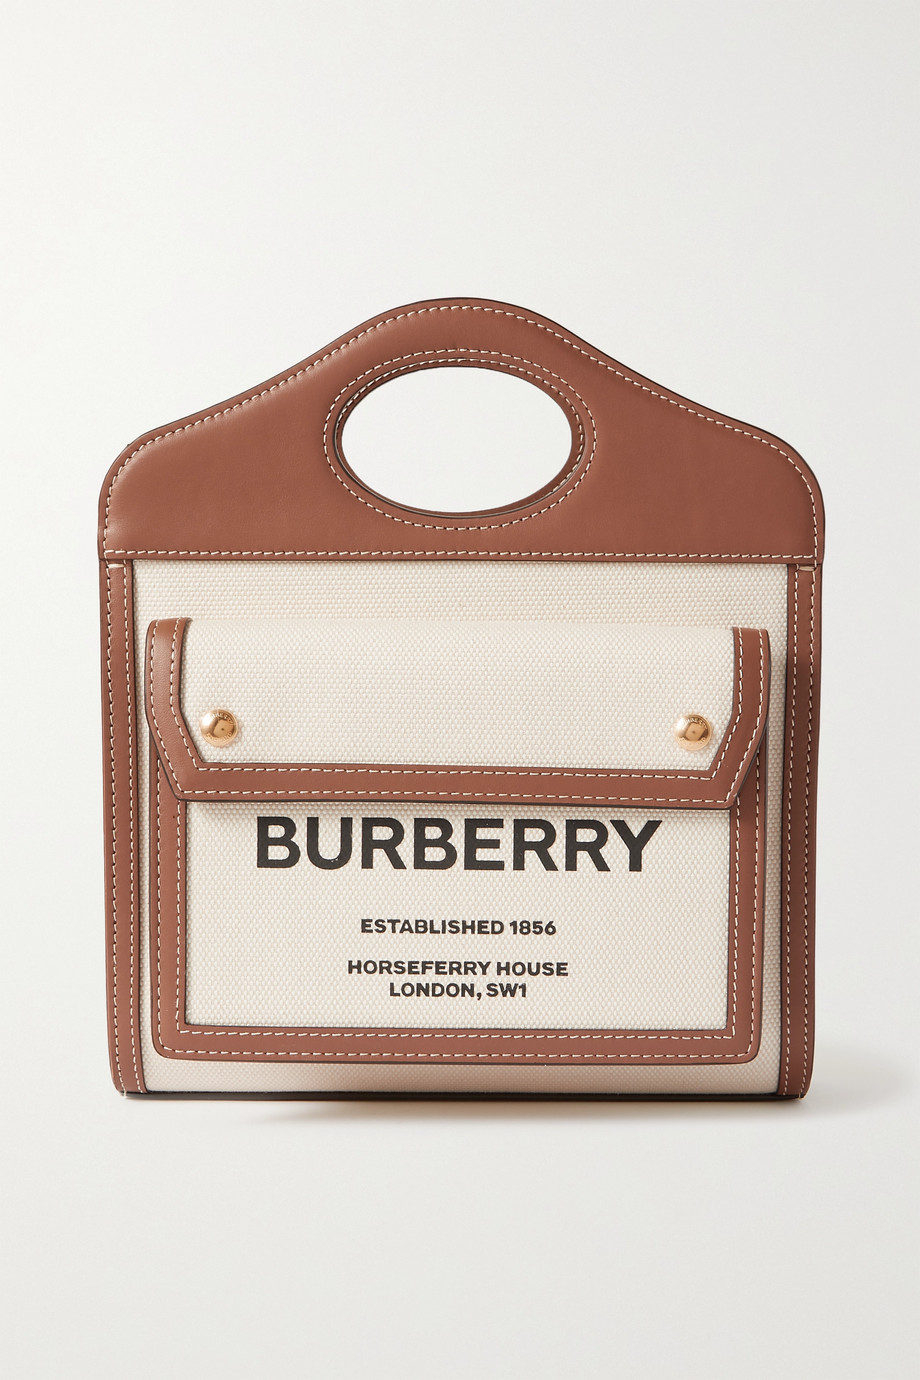 Burberry Sac à main en toile imprimée à finitions en cuir Mini